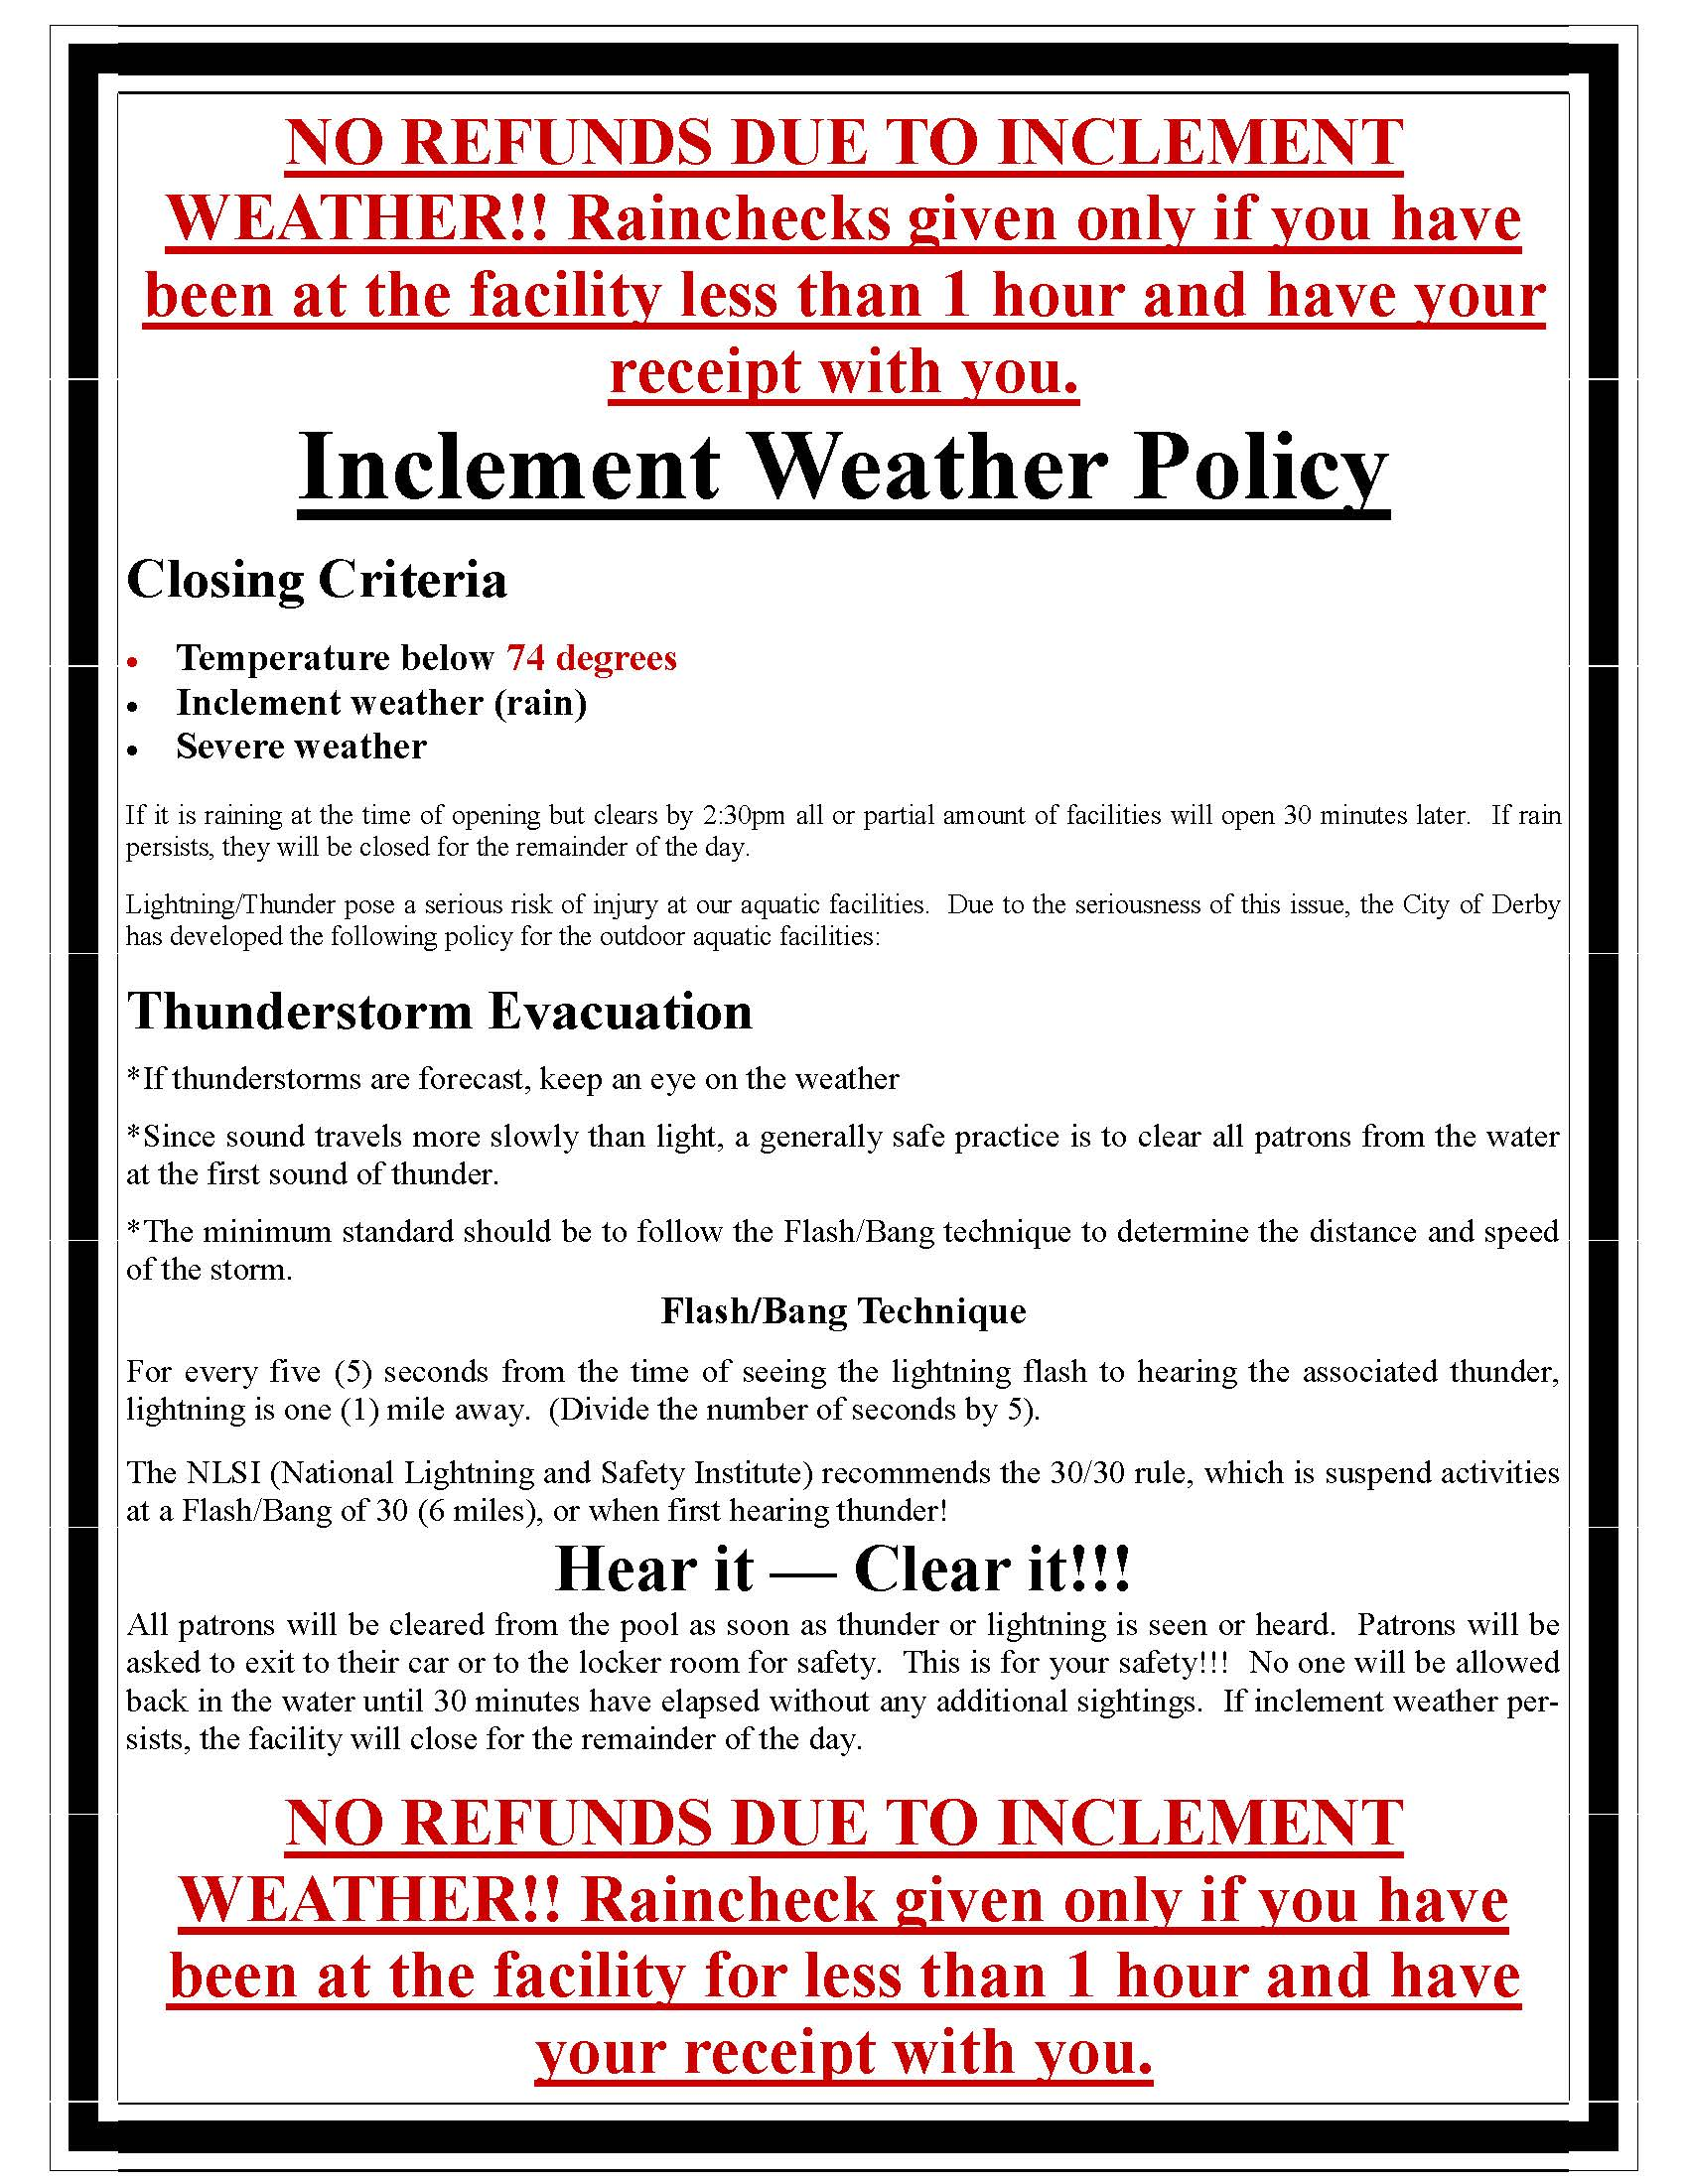 weatherpolicy.jpg